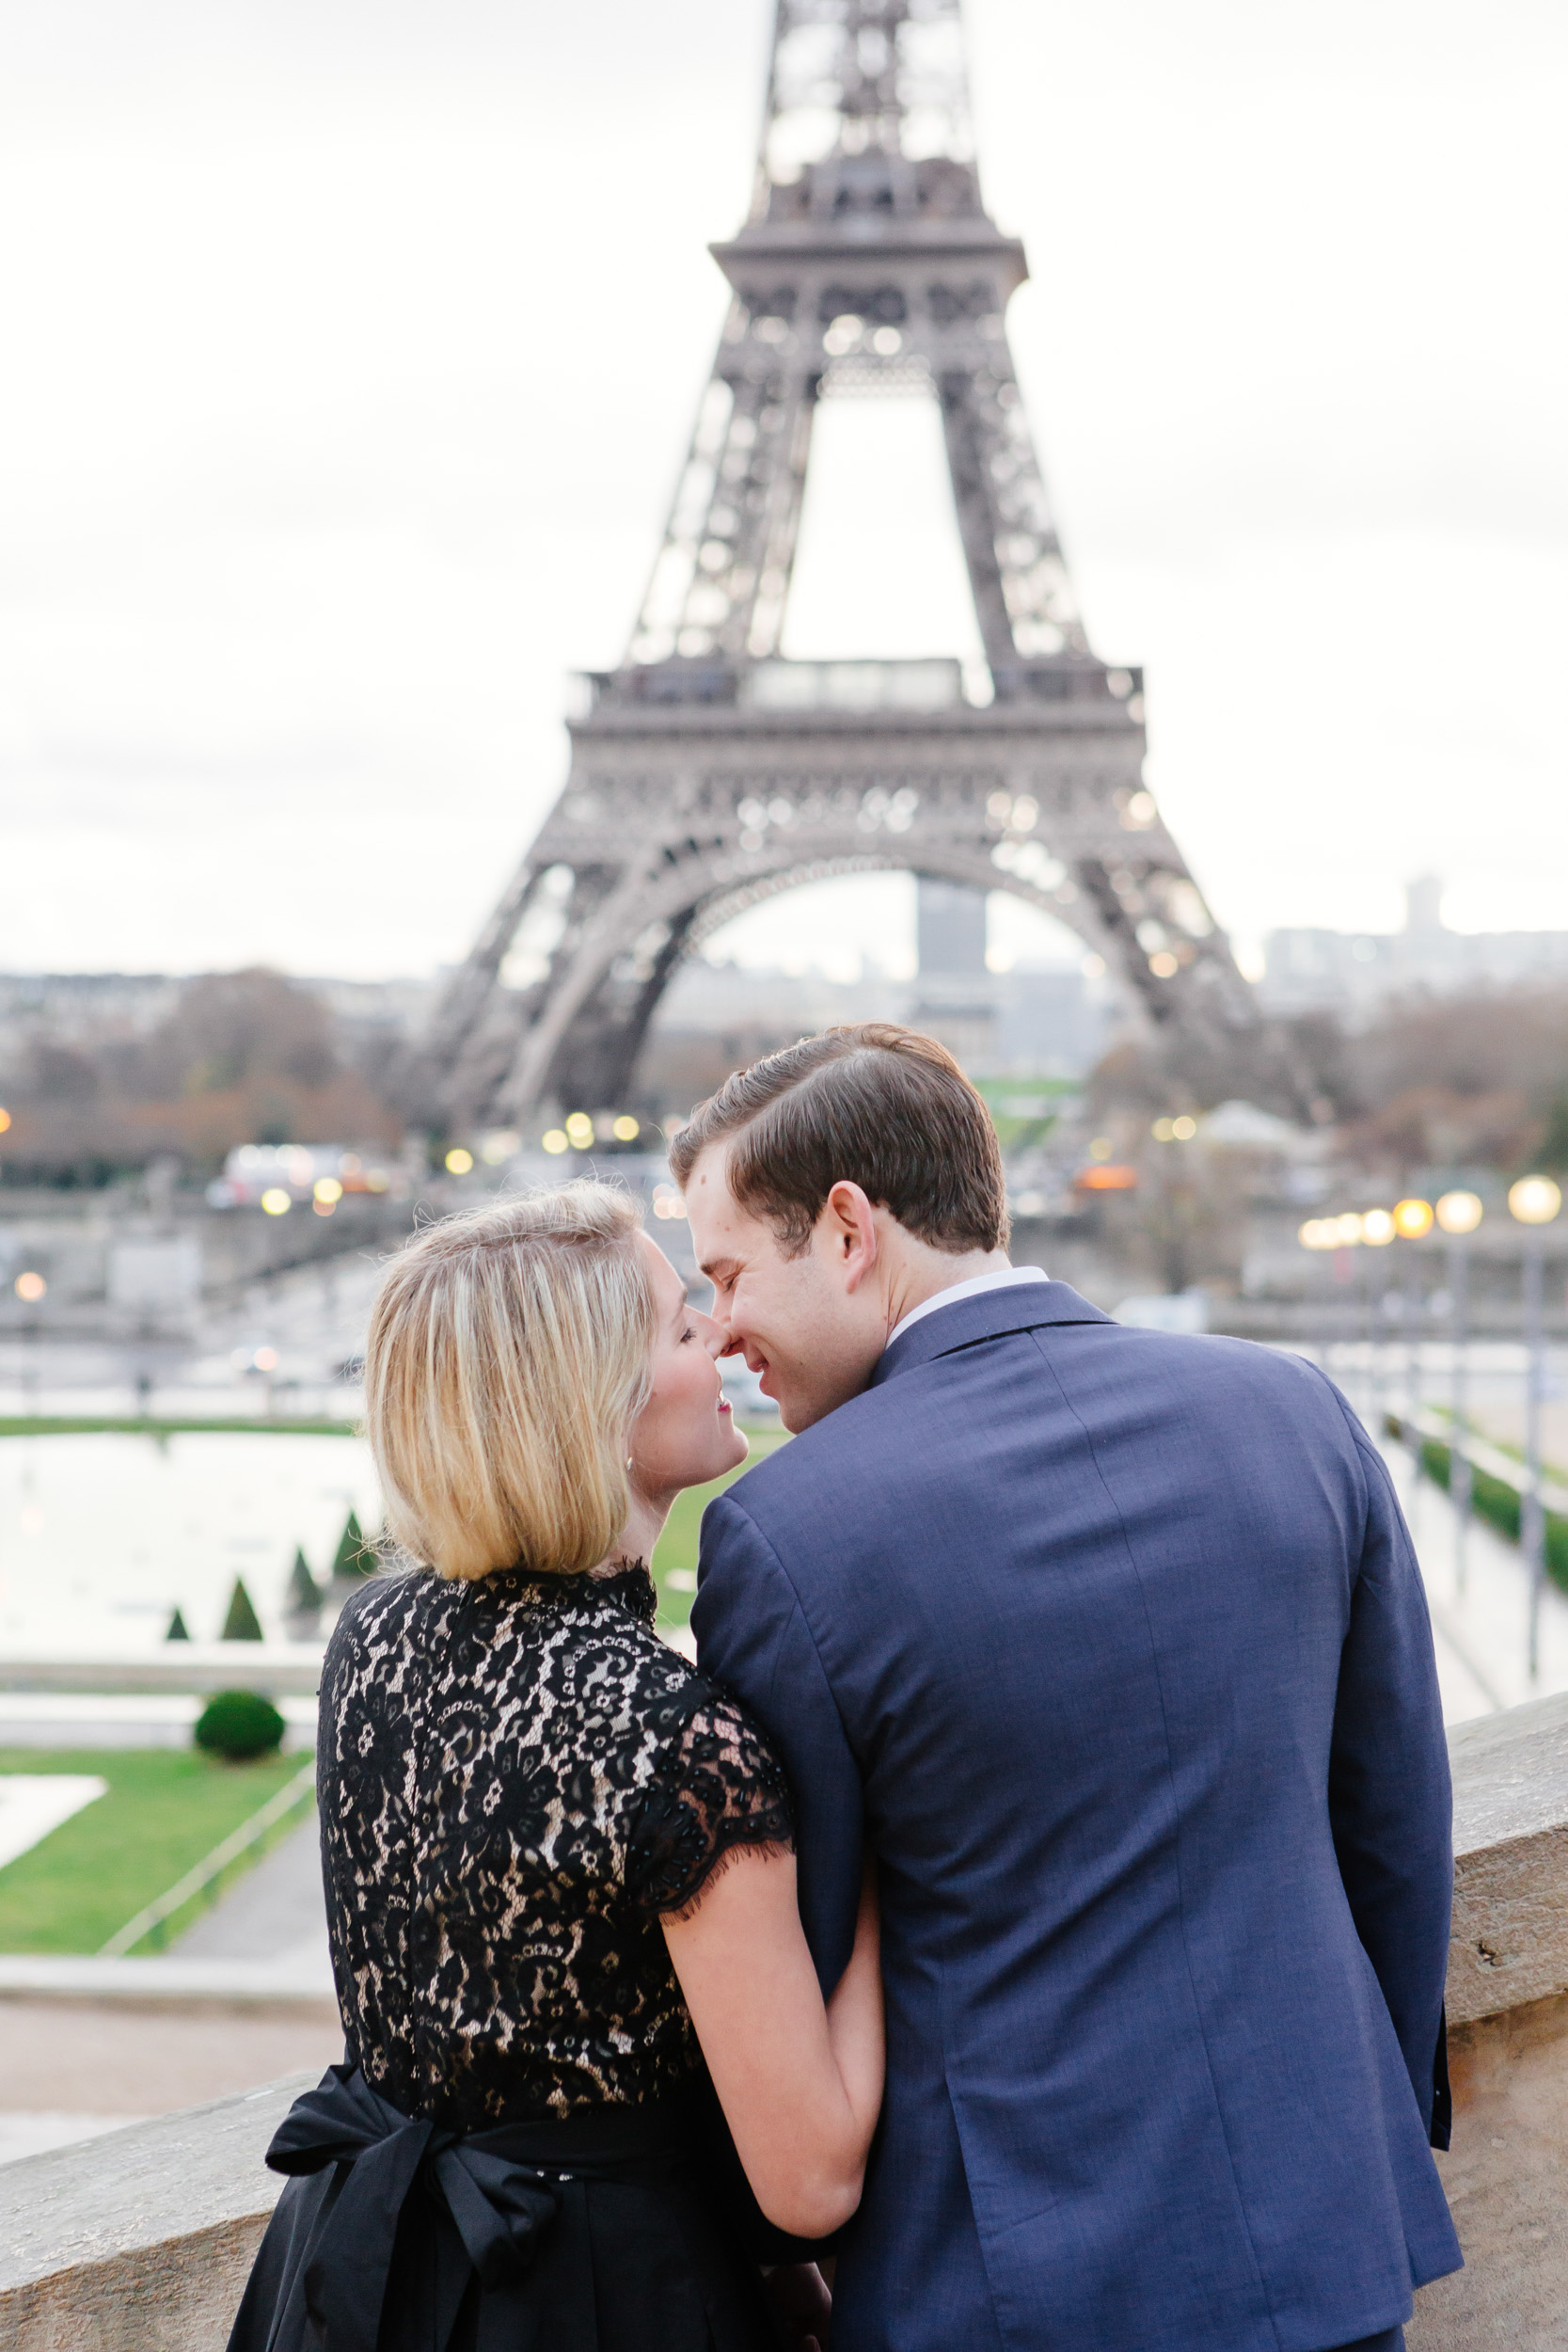 Paris vacation romantic couple portrait at Trocadero with the view of Eiffel Tower captured by Paris Photographer Federico Guendel www.iheartparis.fr